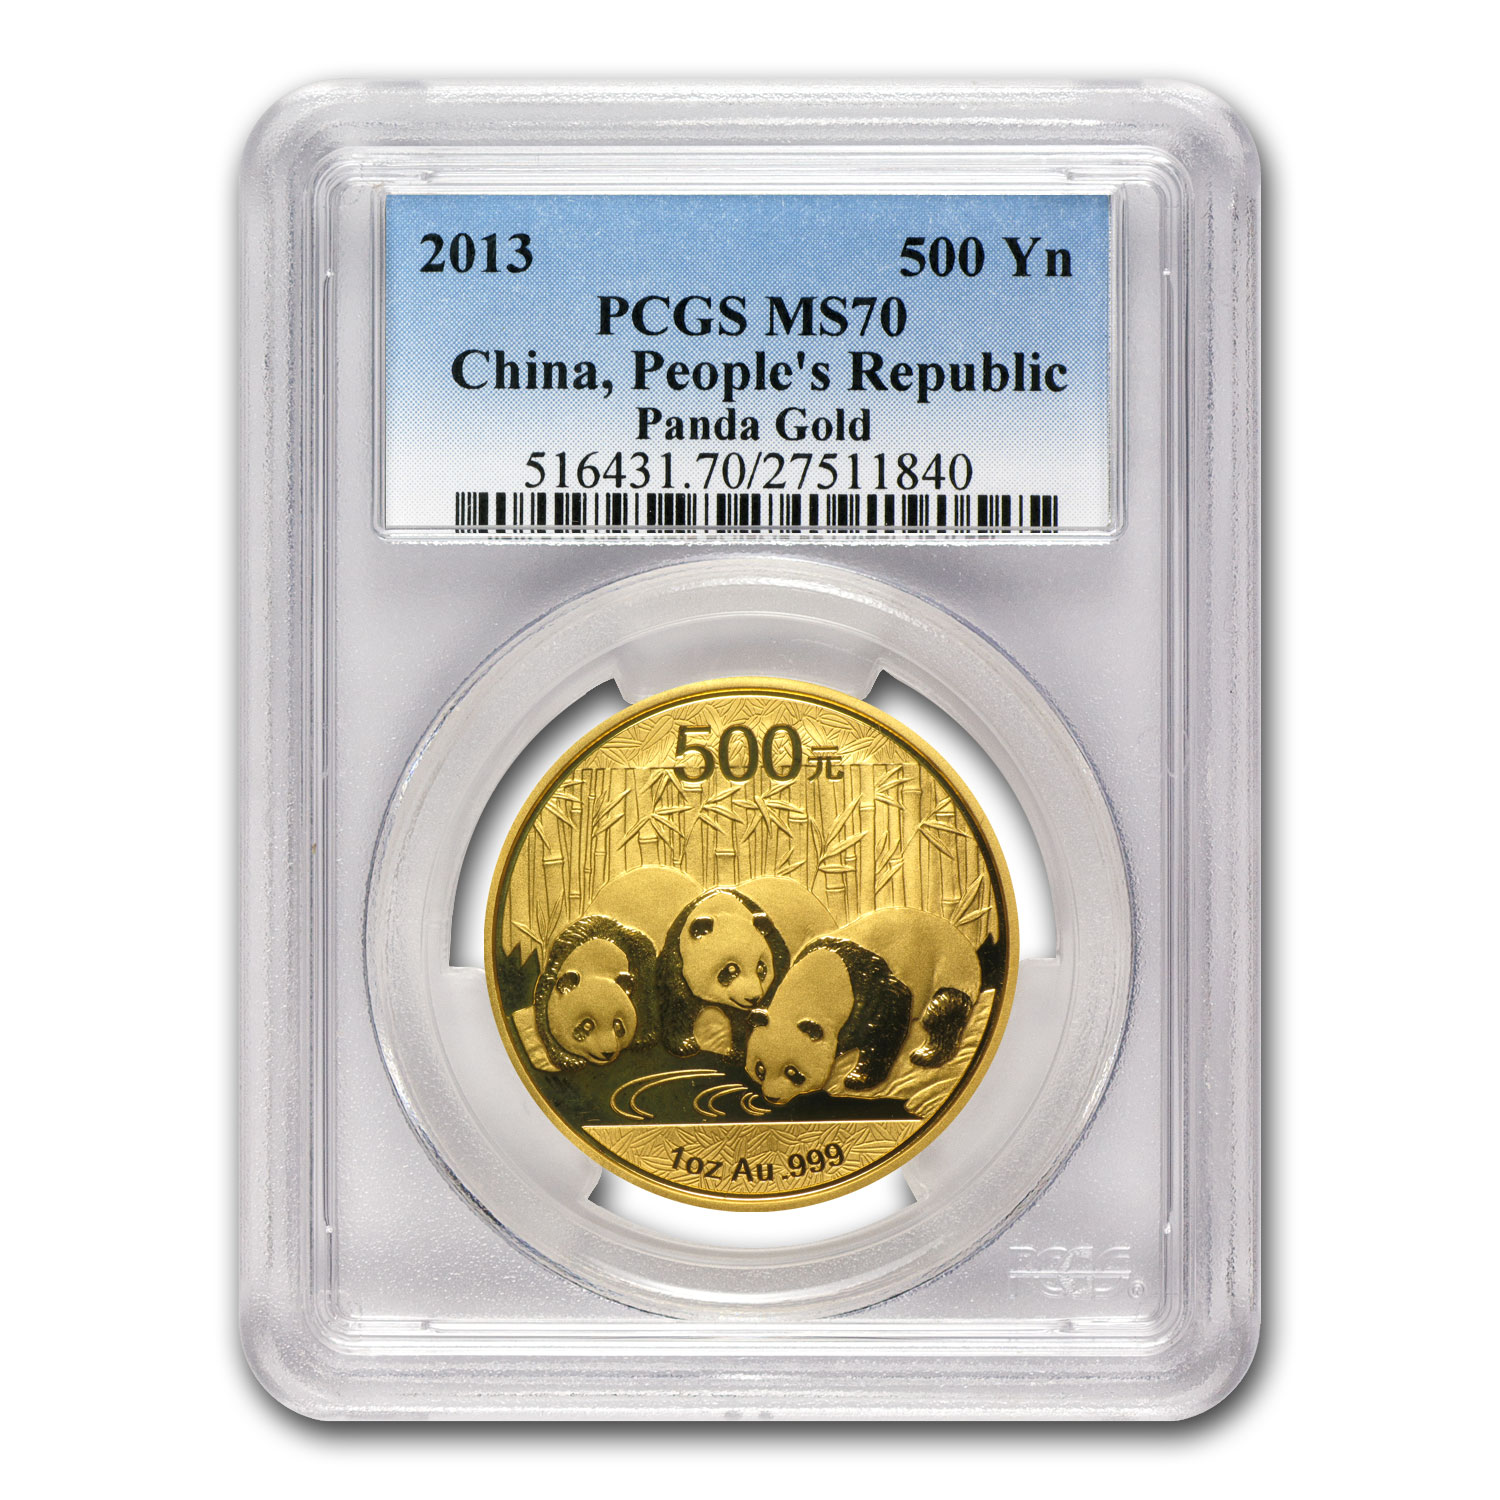 2013 China 1 oz Gold Panda MS-70 PCGS